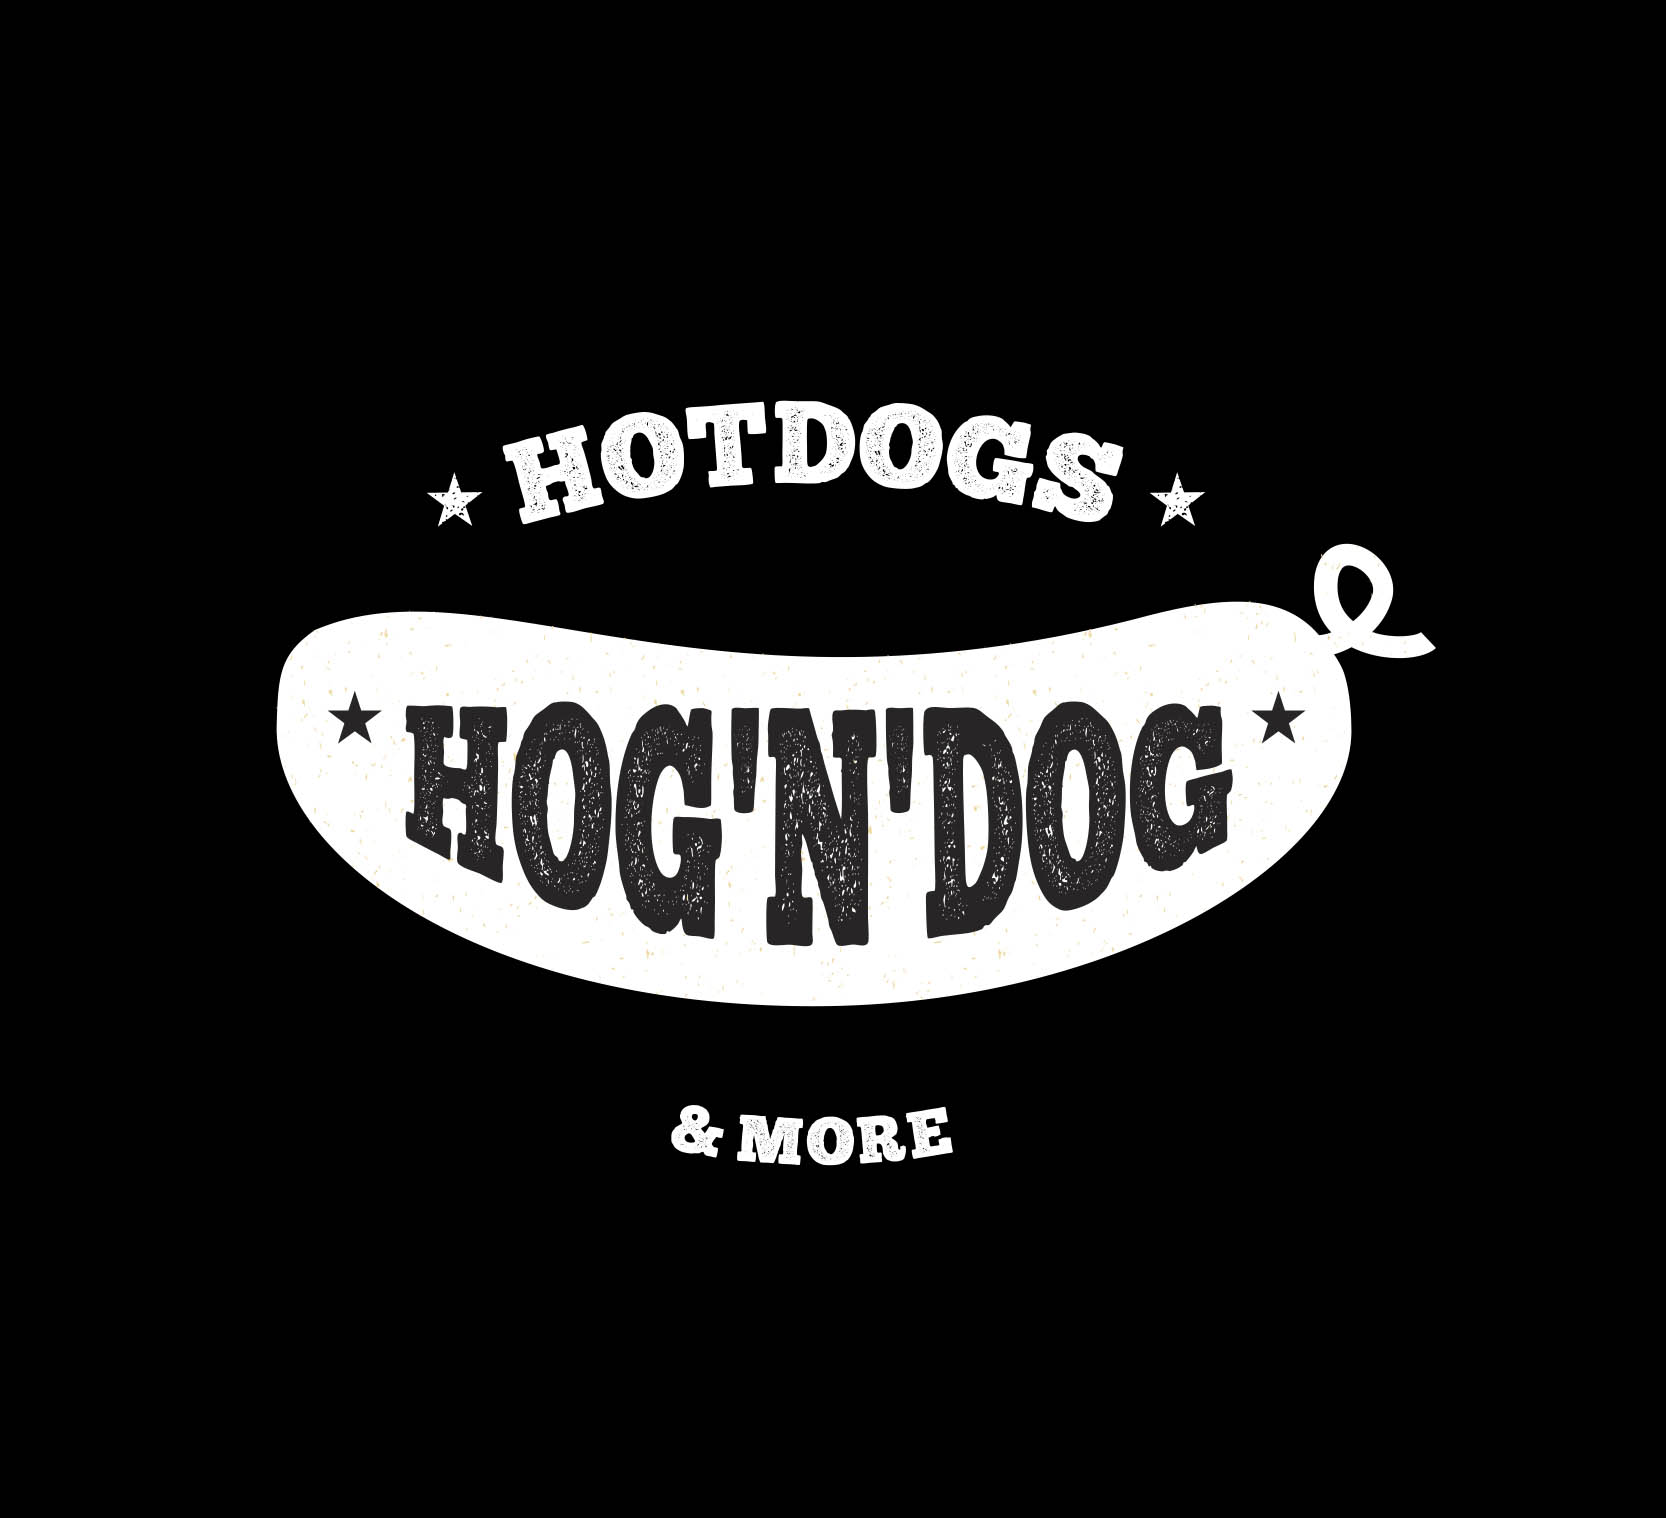 hog'n'dog logo hog'n'dog visual identity